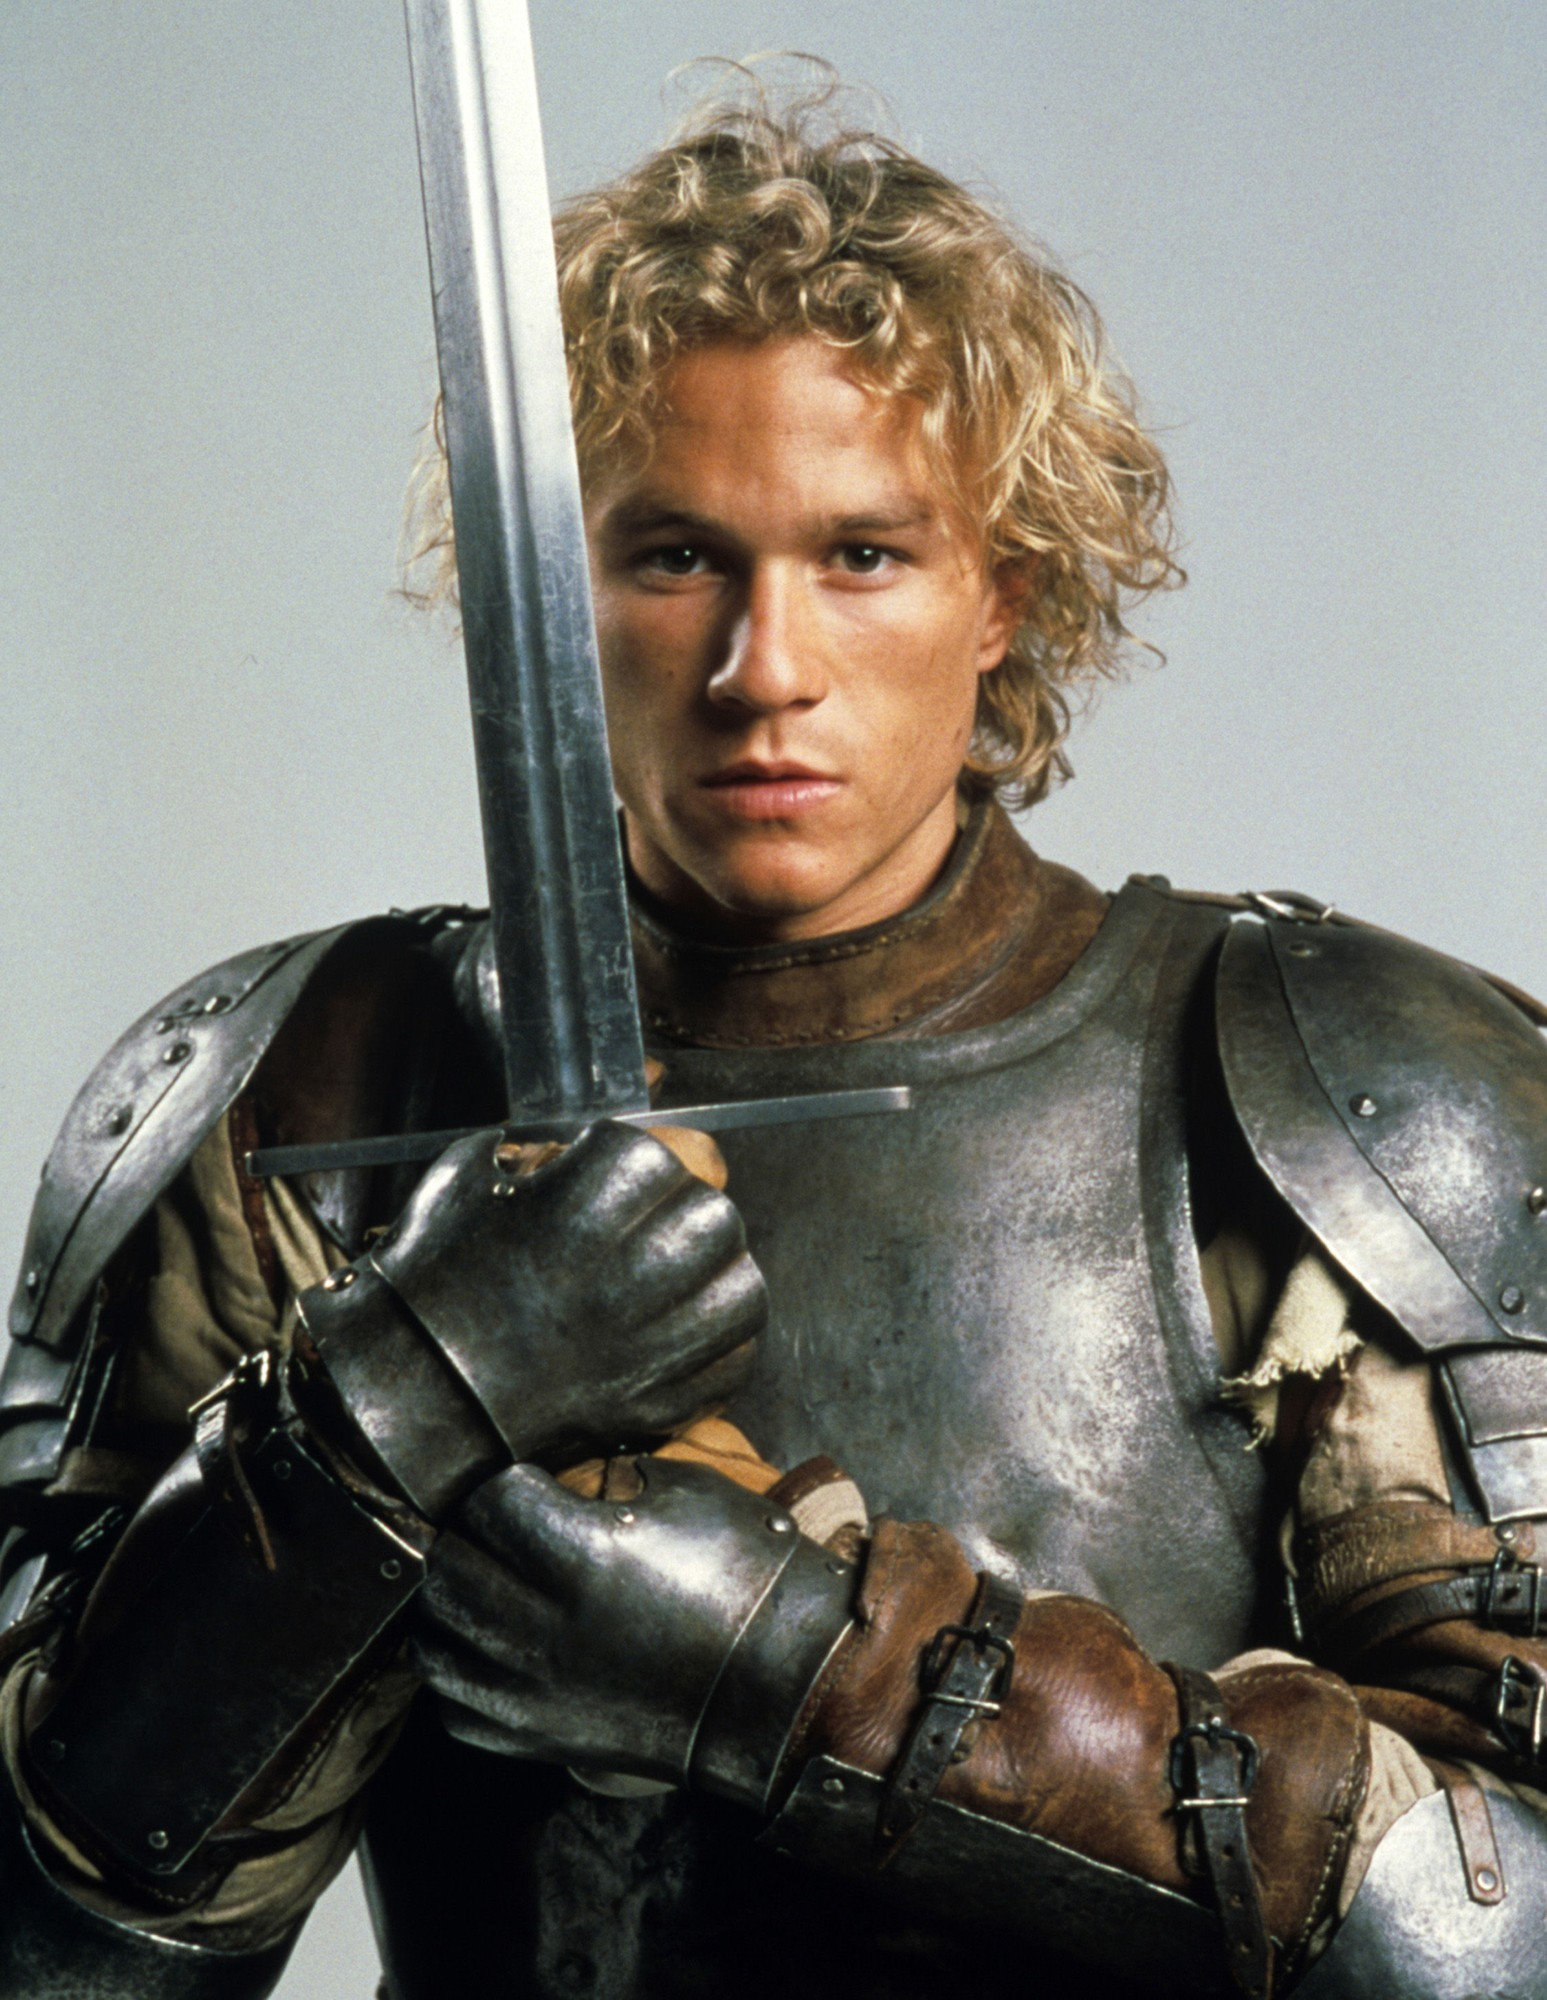 knights tale Find great deals on ebay for knights tale dvd shop with confidence.